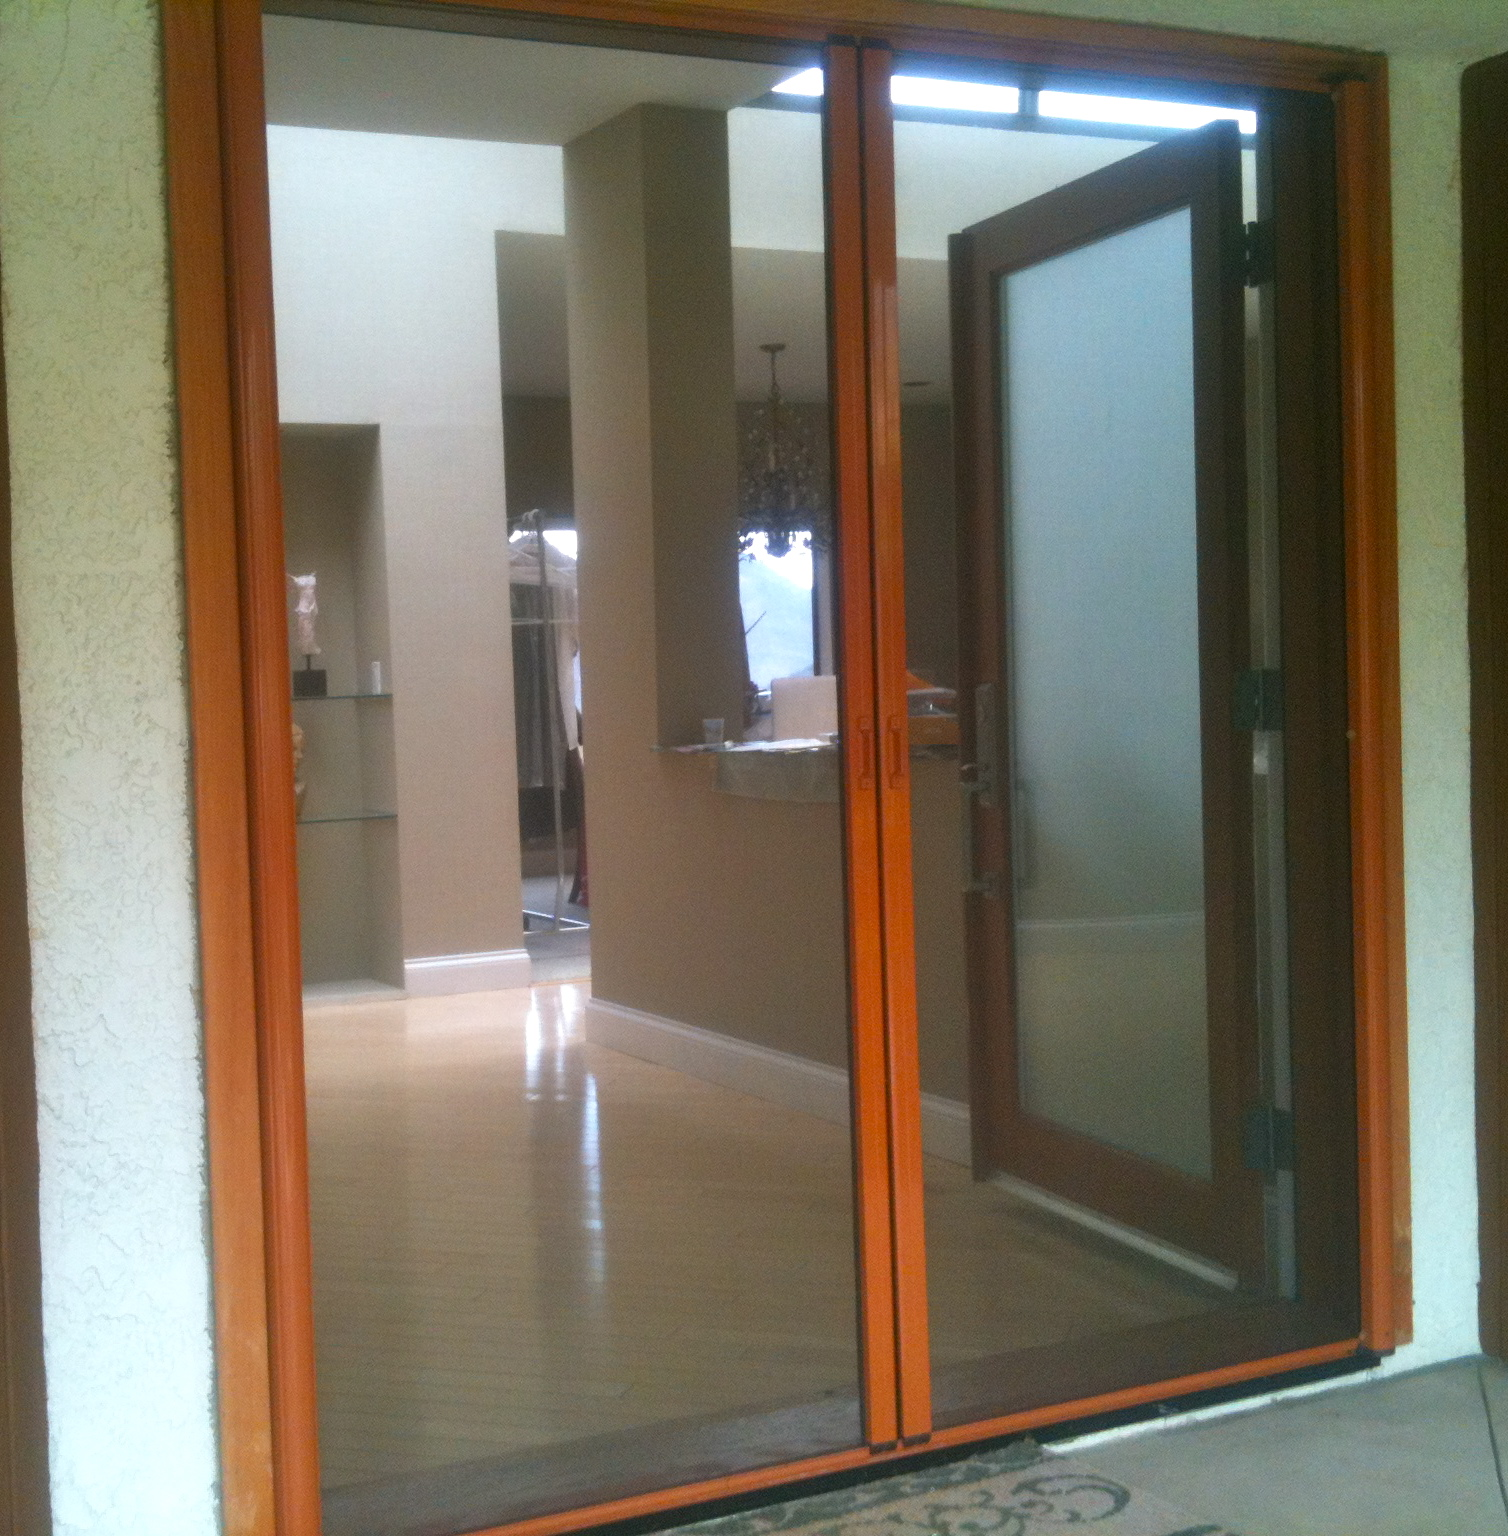 Screen doors window screen repair mobile screen service Cost of retractable screen doors